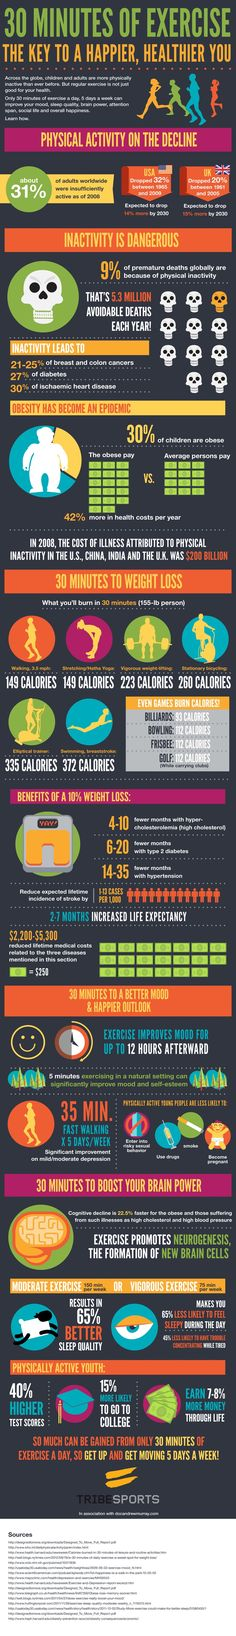 30 minutes of exercise can do so much...